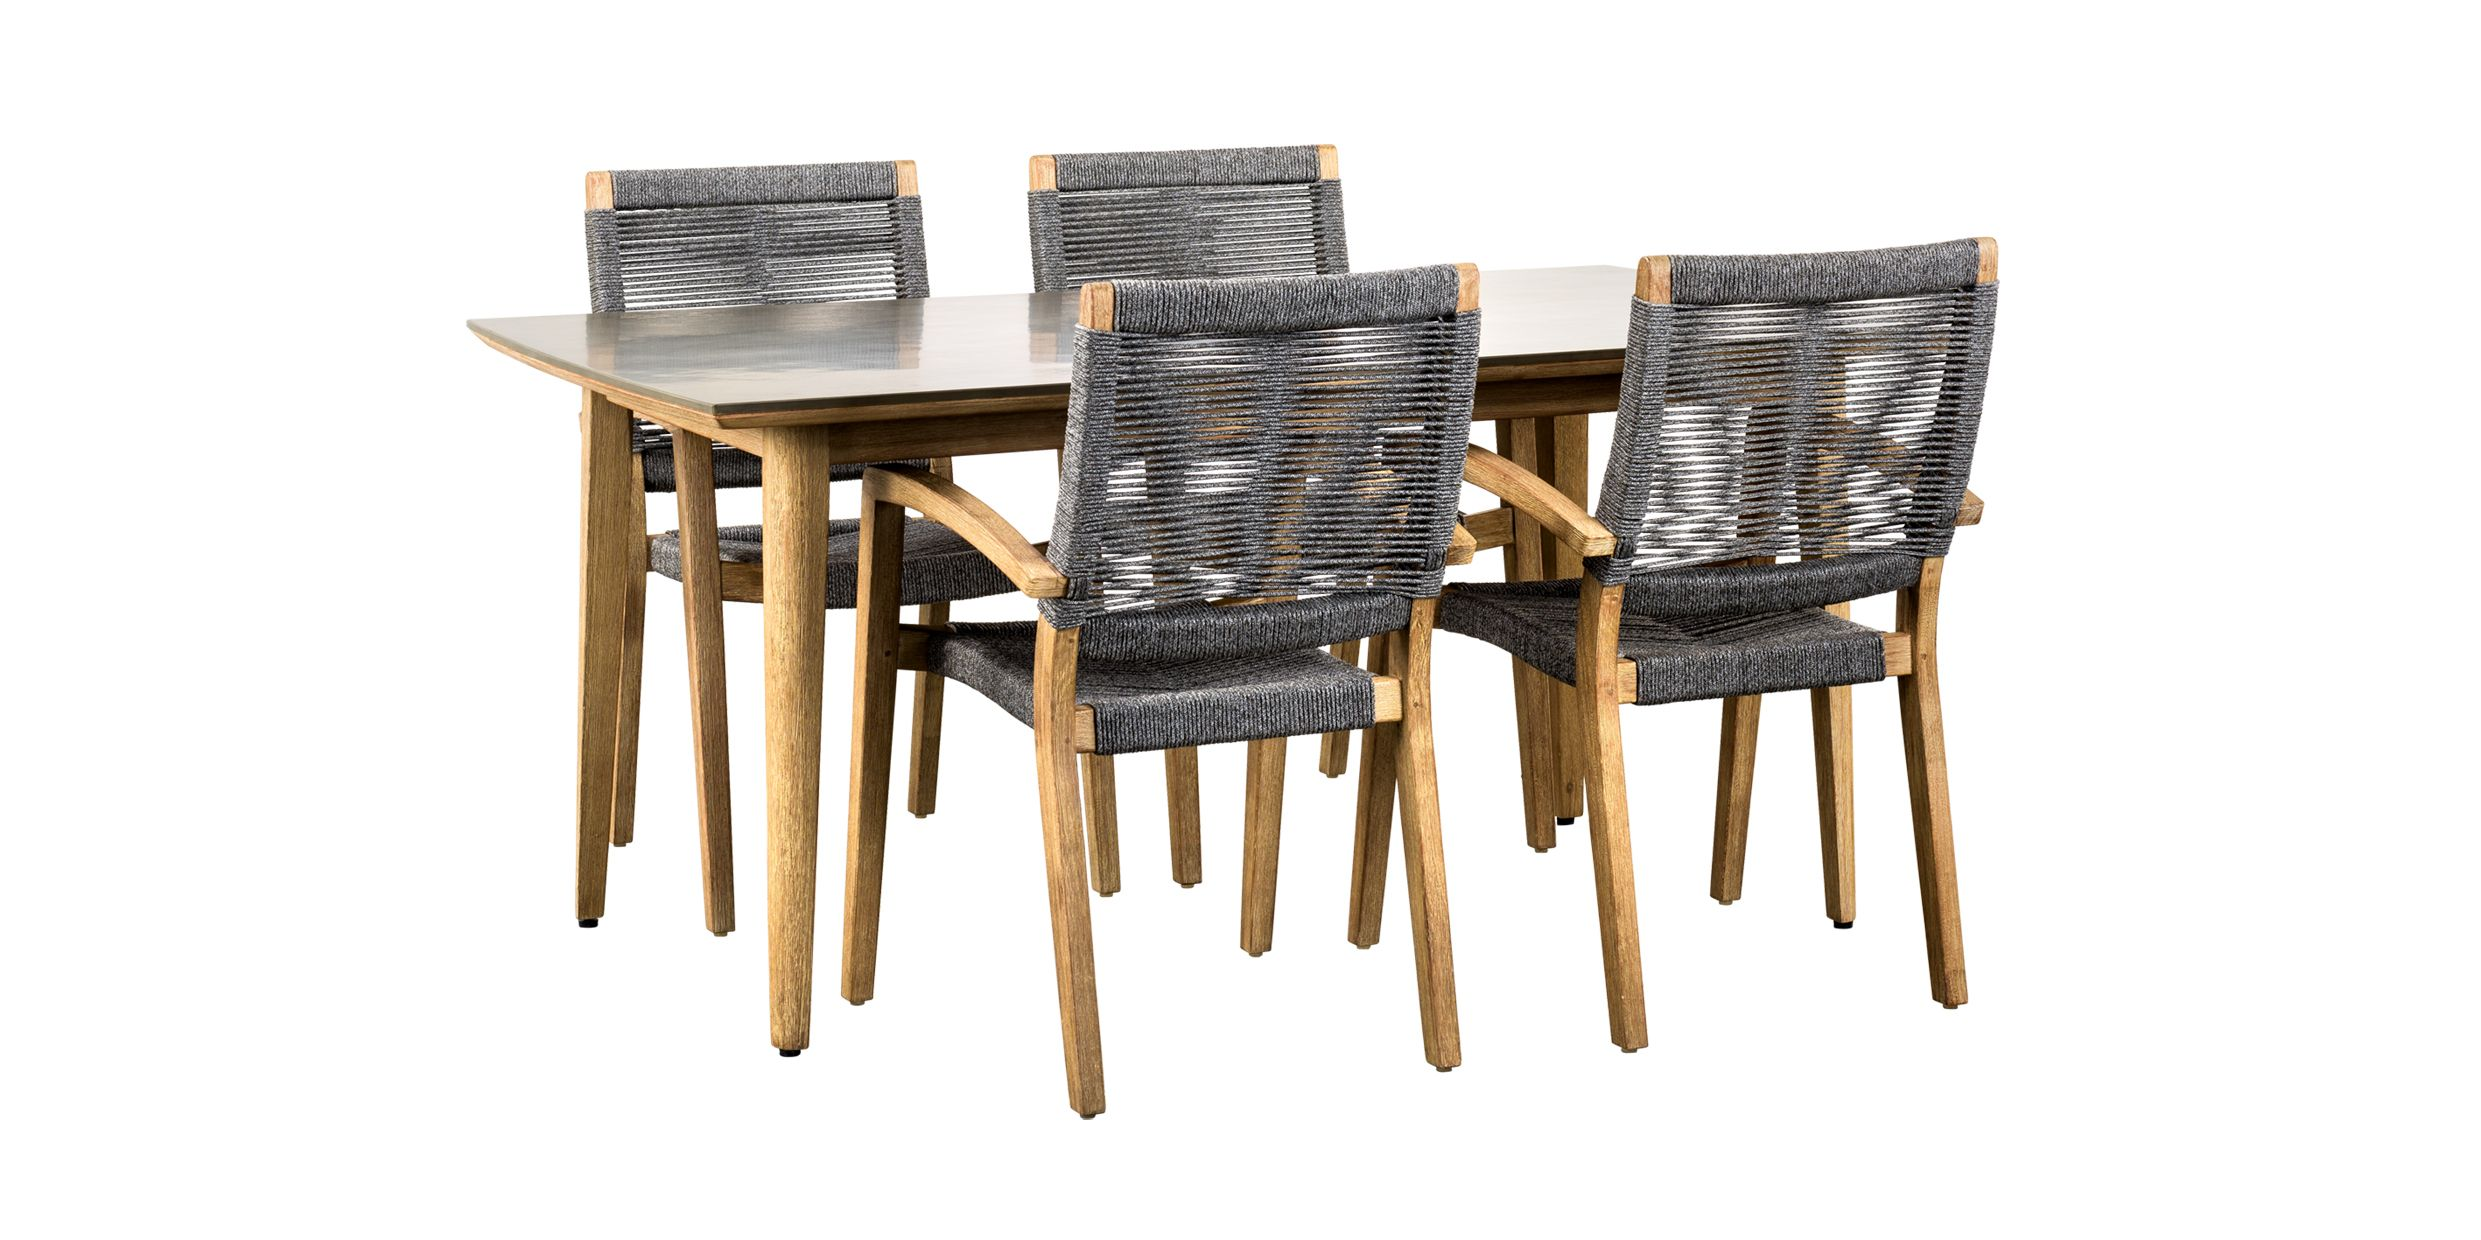 Suns Tavos Dining Table Suns Grey Collection Suns Itea Dining